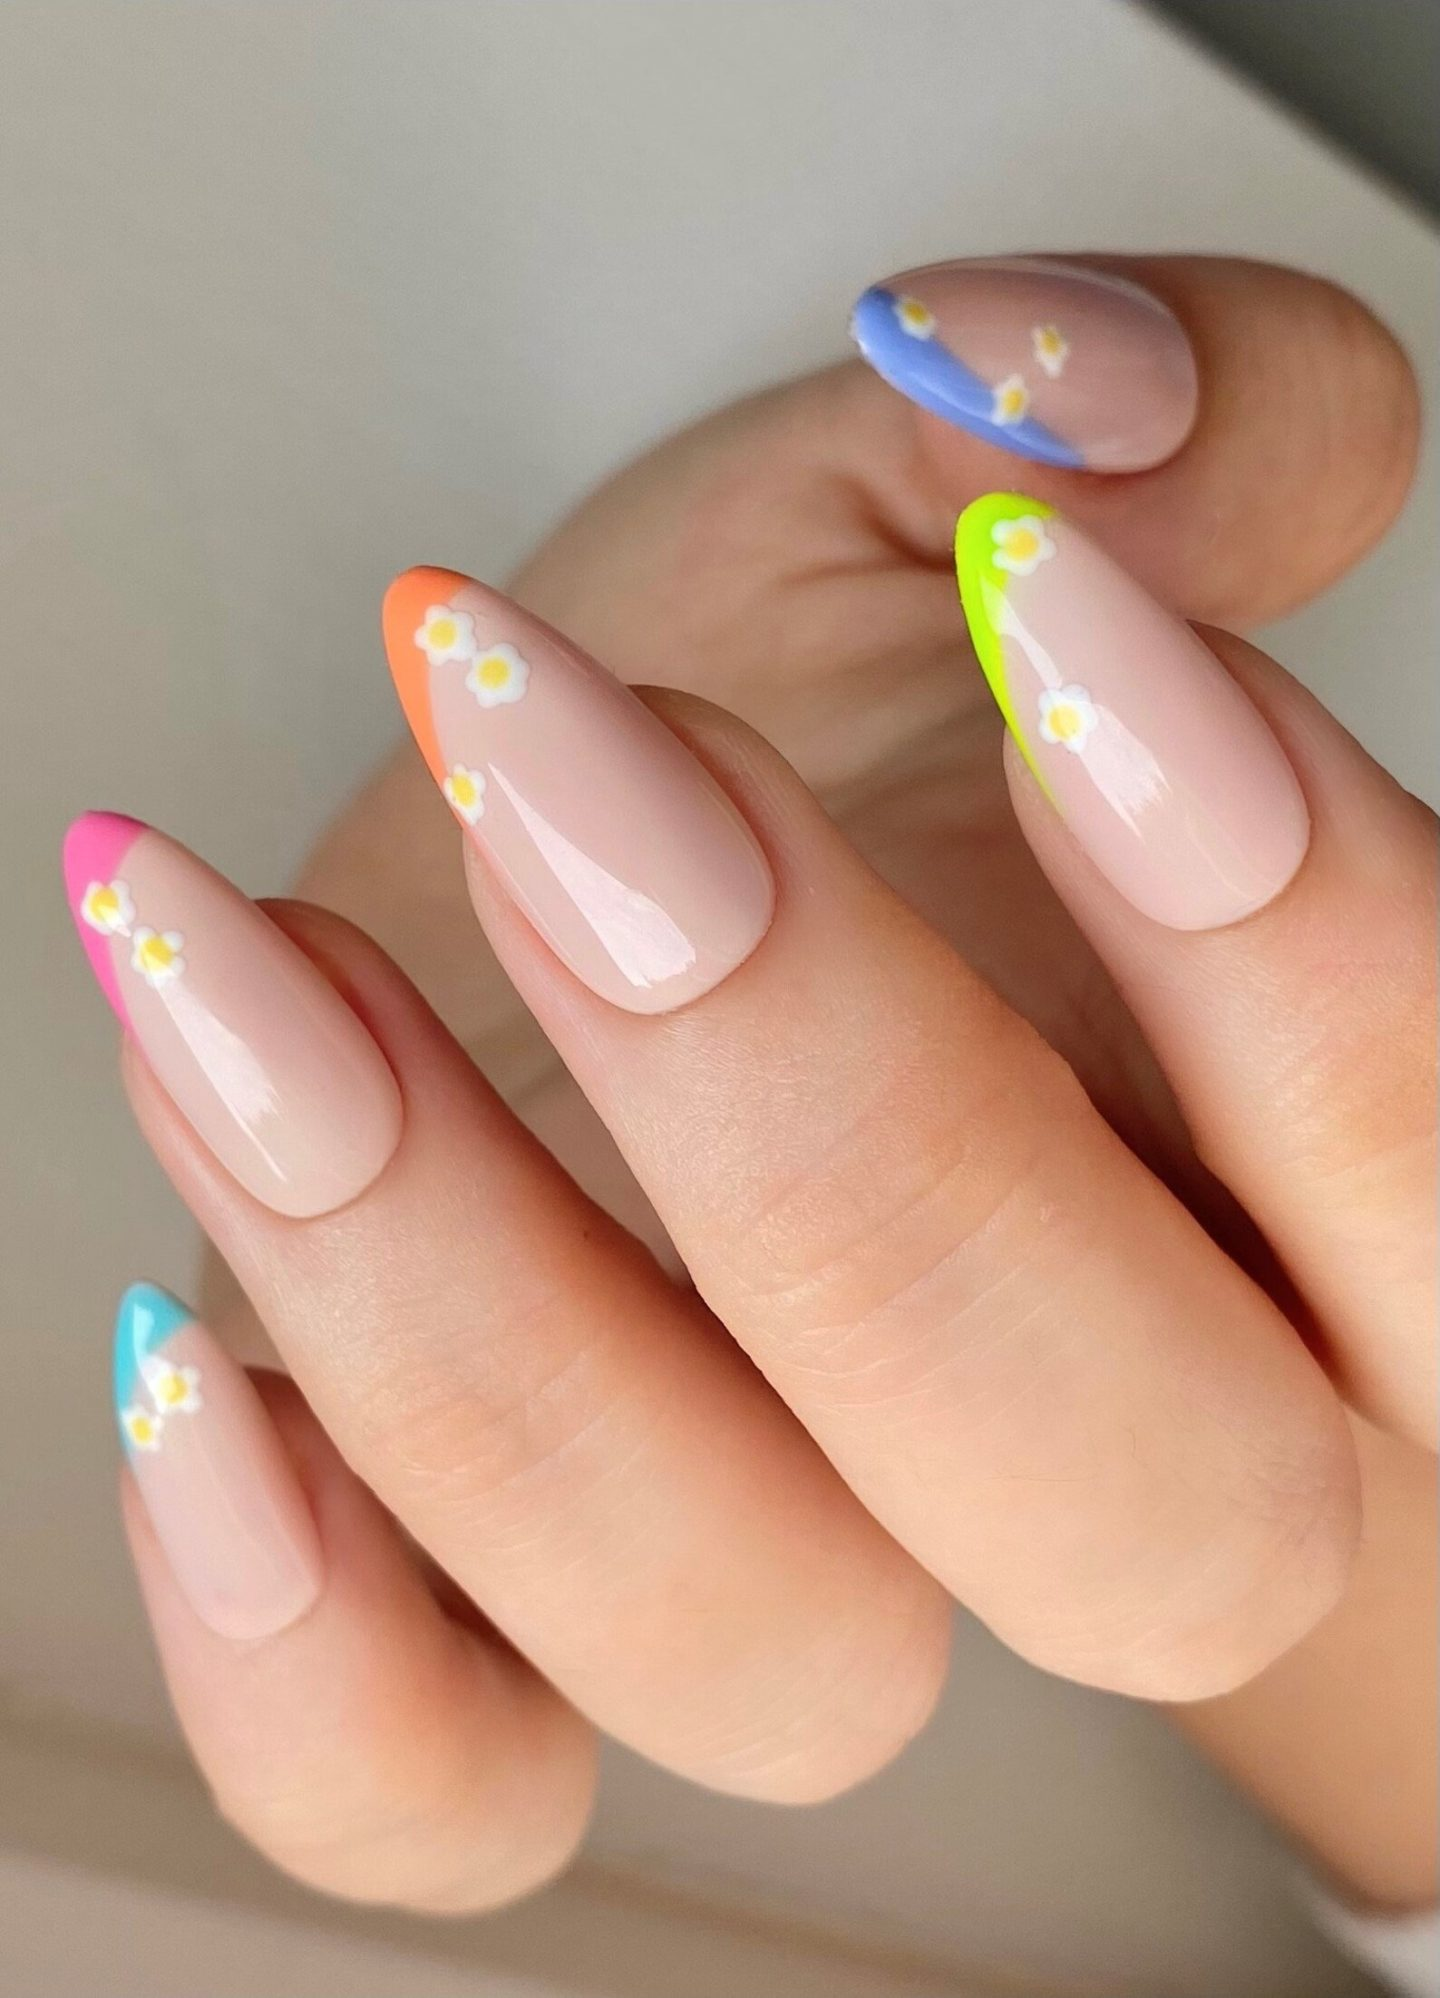 Cute minimalist colorful French tip nails with daisy nail art